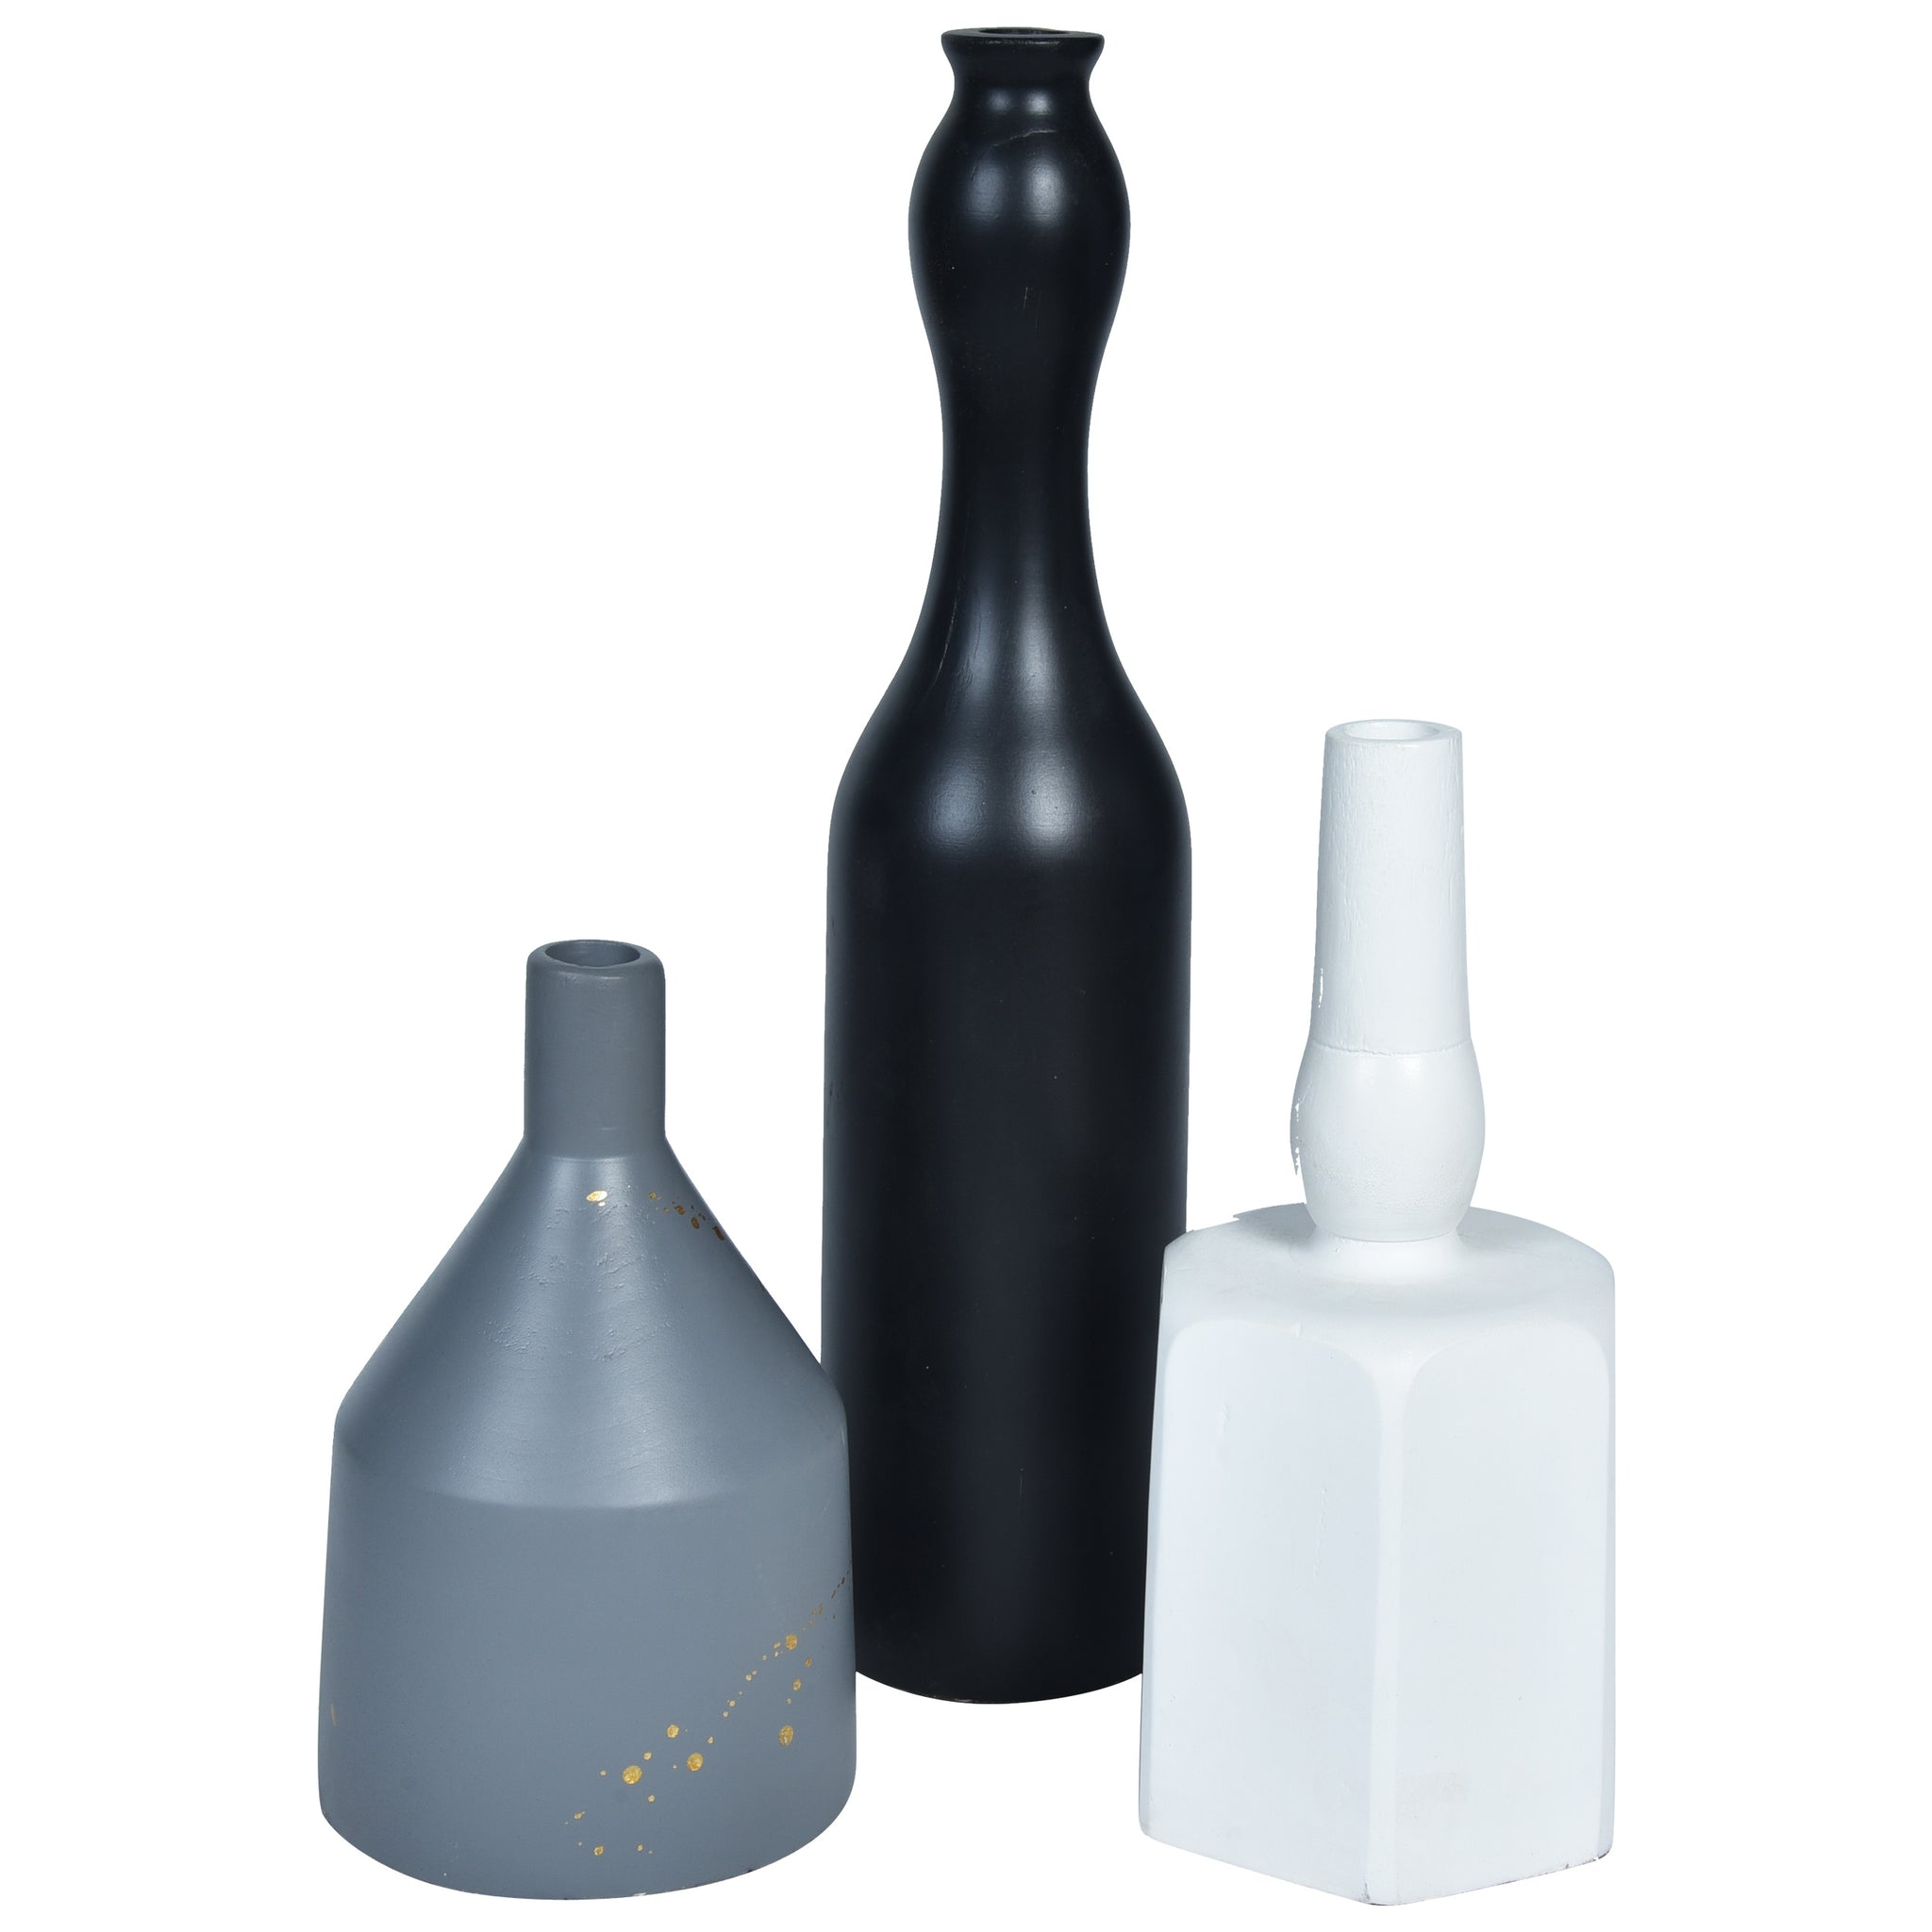 MODERN Vase set of 3 - White, Black & Grey